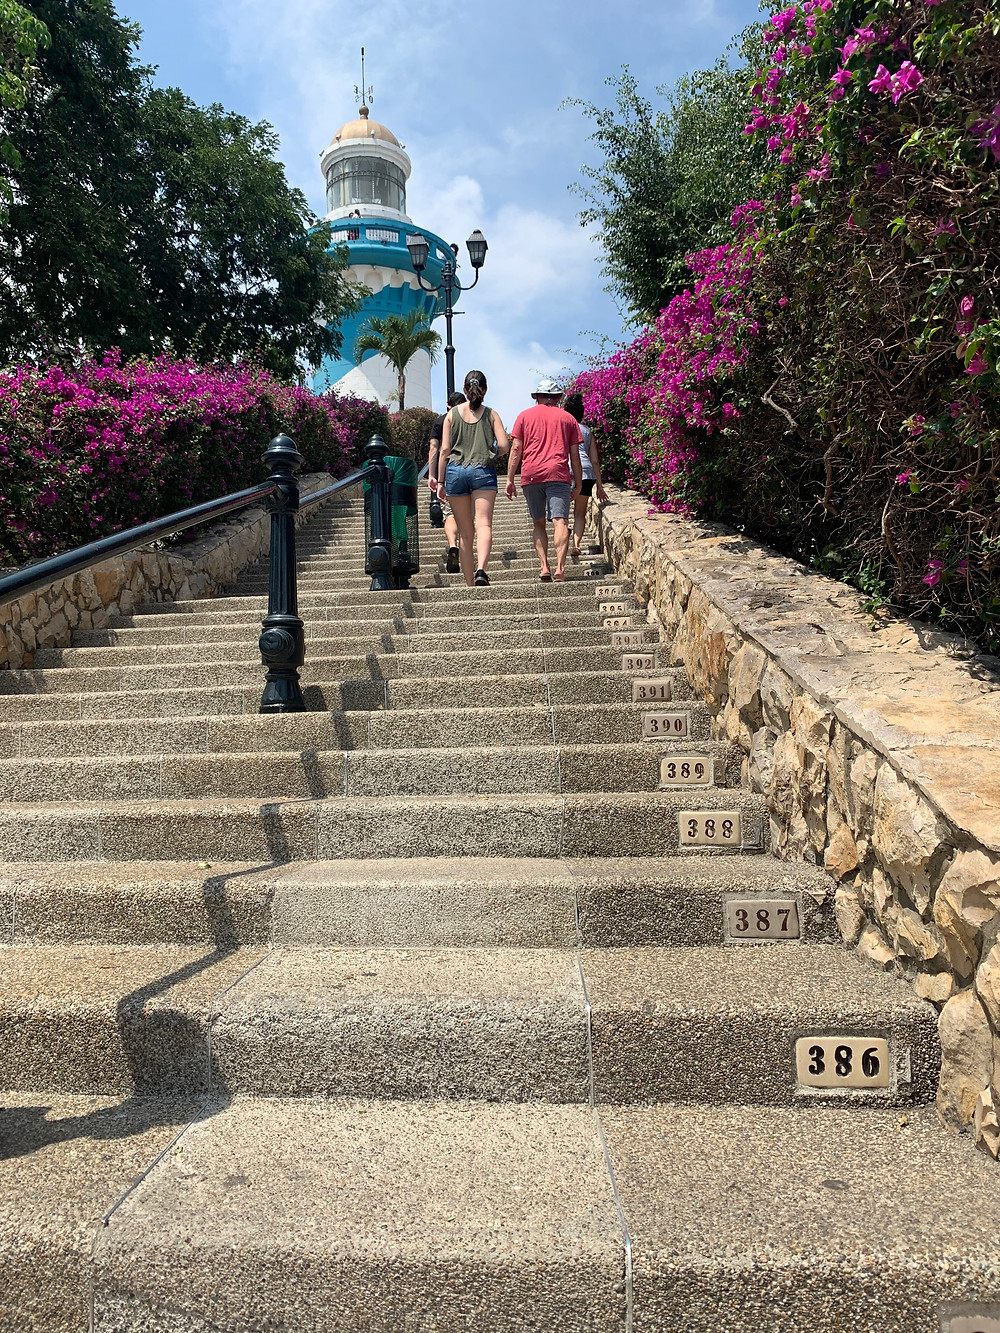 A family of three climb the final numbered steps to a blue and white lighthouse at the top of hill in Guayaquil.